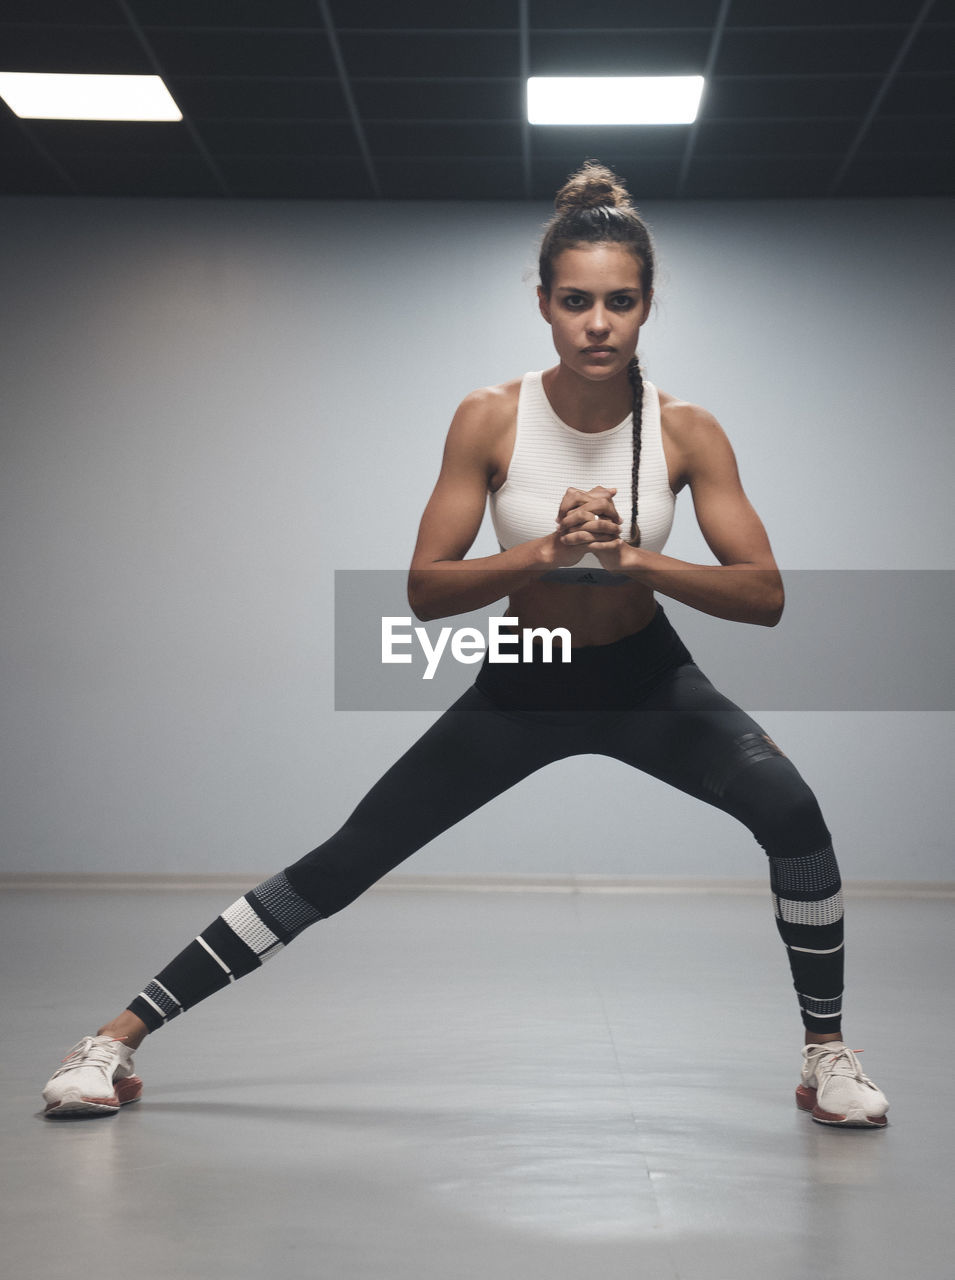 one person, full length, indoors, front view, exercising, portrait, looking at camera, lifestyles, young adult, sport, healthy lifestyle, young women, sports clothing, determination, confidence, practicing, flexibility, clothing, beautiful woman